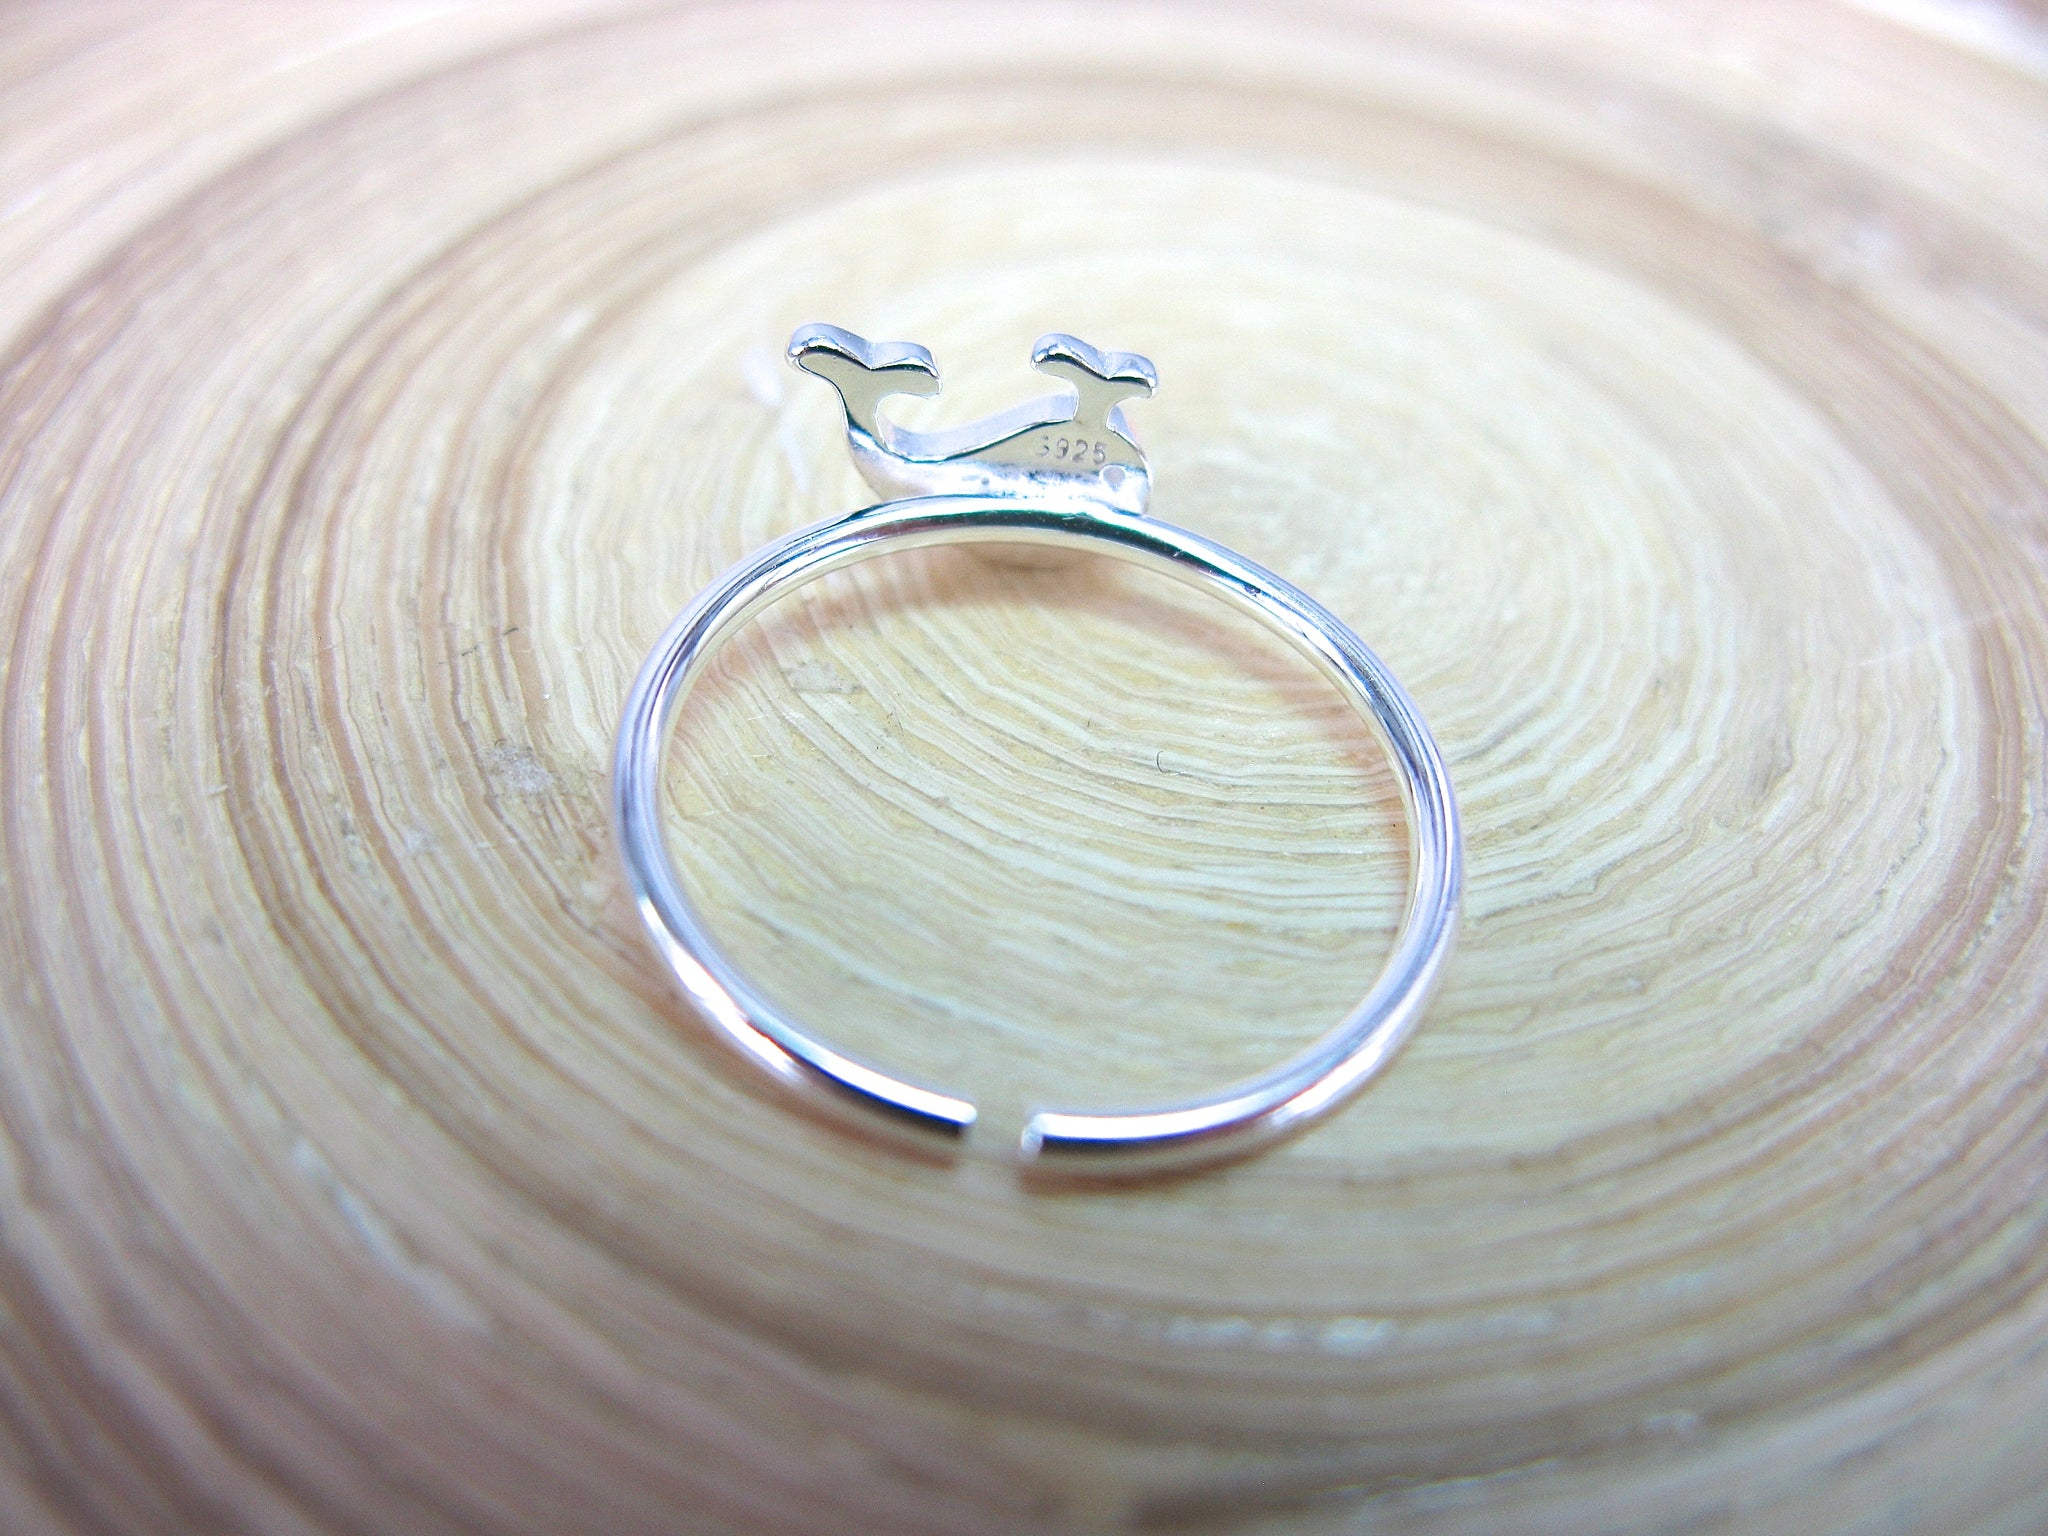 Whale Ring in 925 Sterling Silver